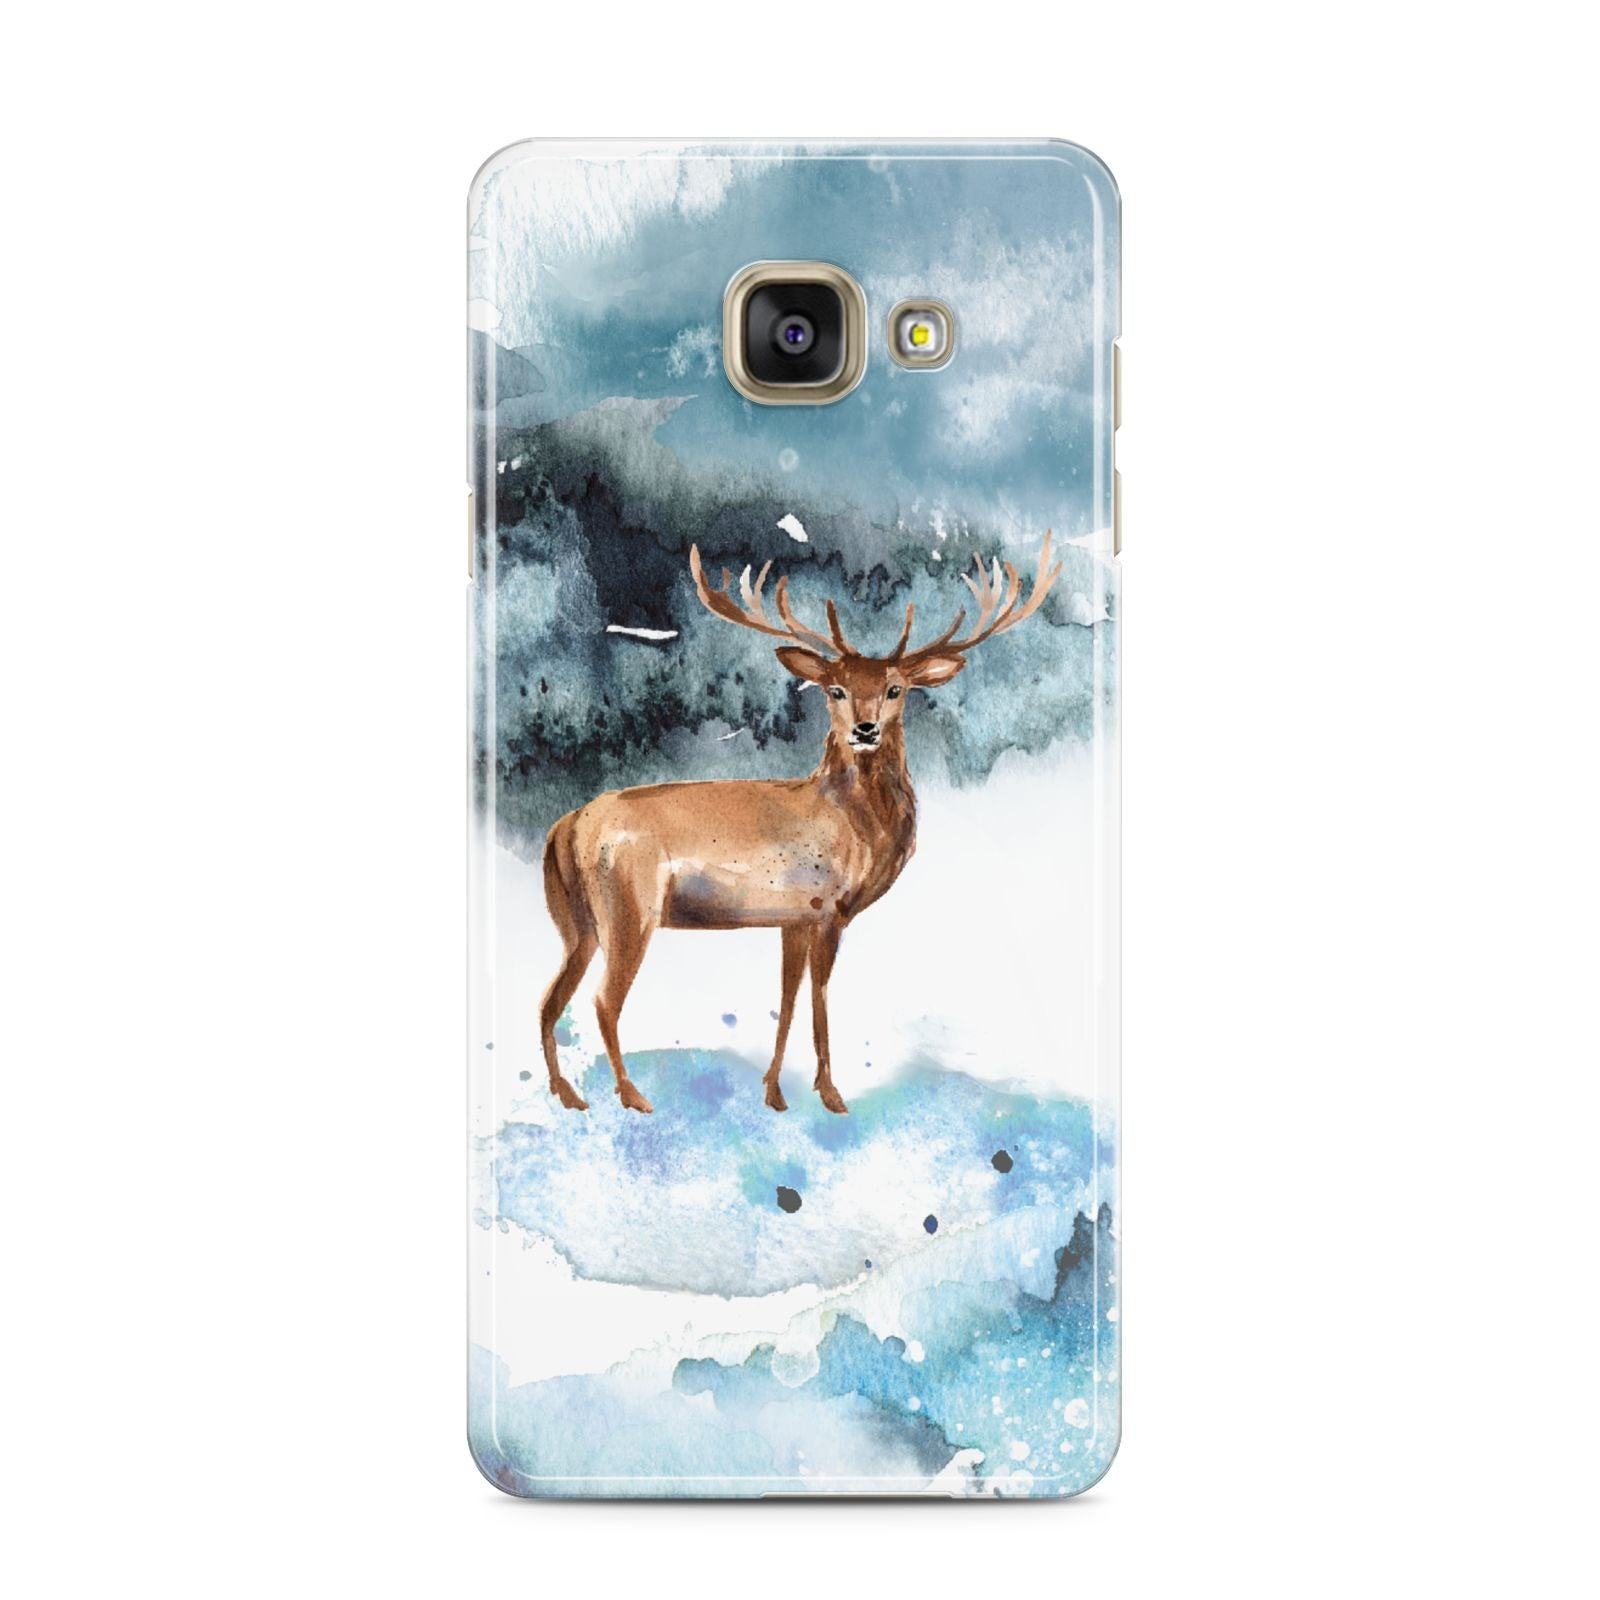 Christmas Winter Stag Samsung Galaxy A3 2016 Case on gold phone